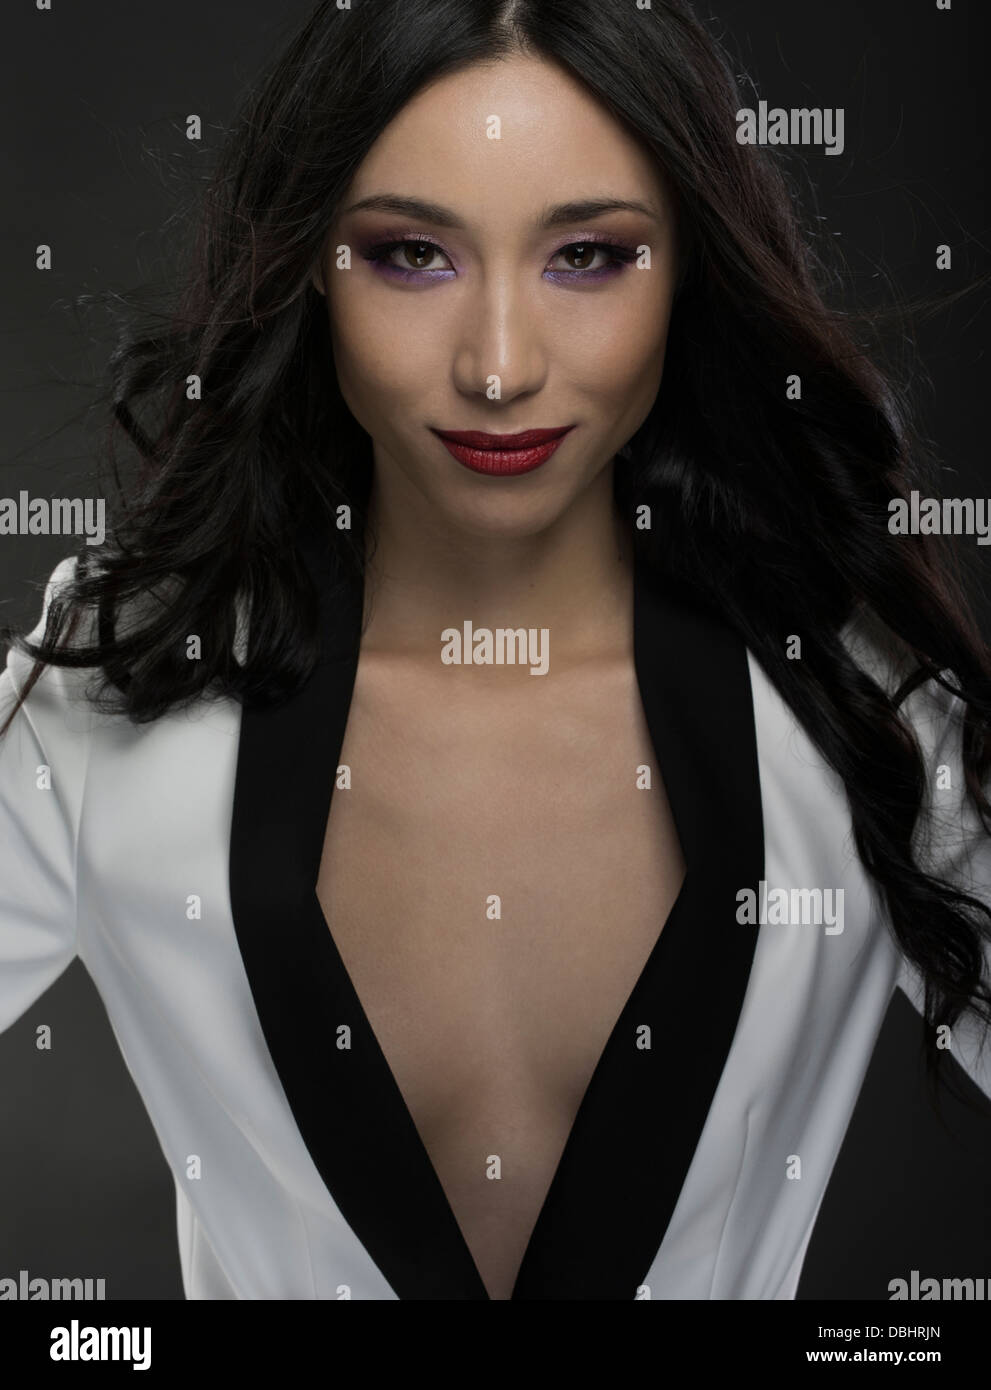 Beautiful asian woman in her twenties wearing black and white jacket